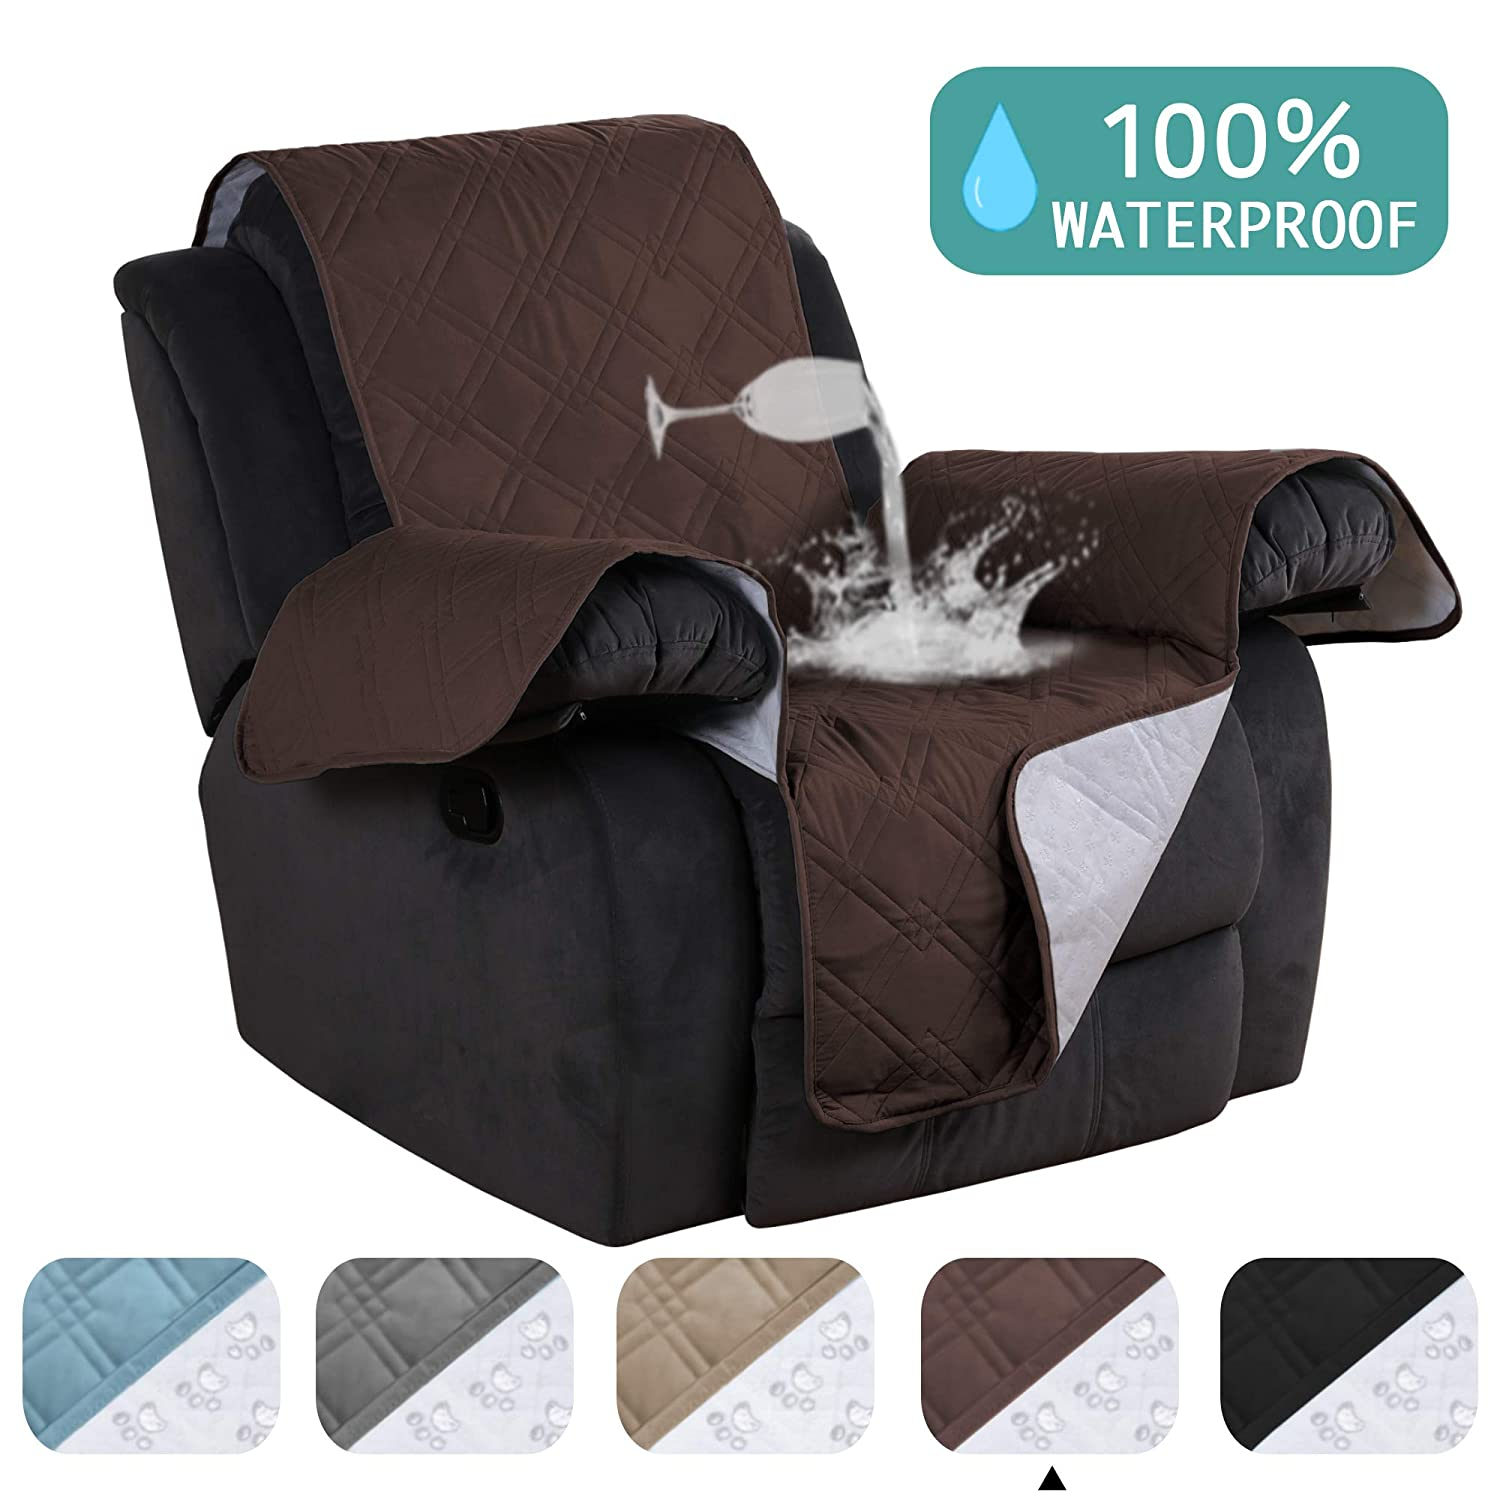 Prime Waterproof Furniture Protectors For Recliners Covers Non Slip Furniture Cover For Chair Cover Brown Quilted Sofa Cover Stay In Place Stapless Small Pabps2019 Chair Design Images Pabps2019Com